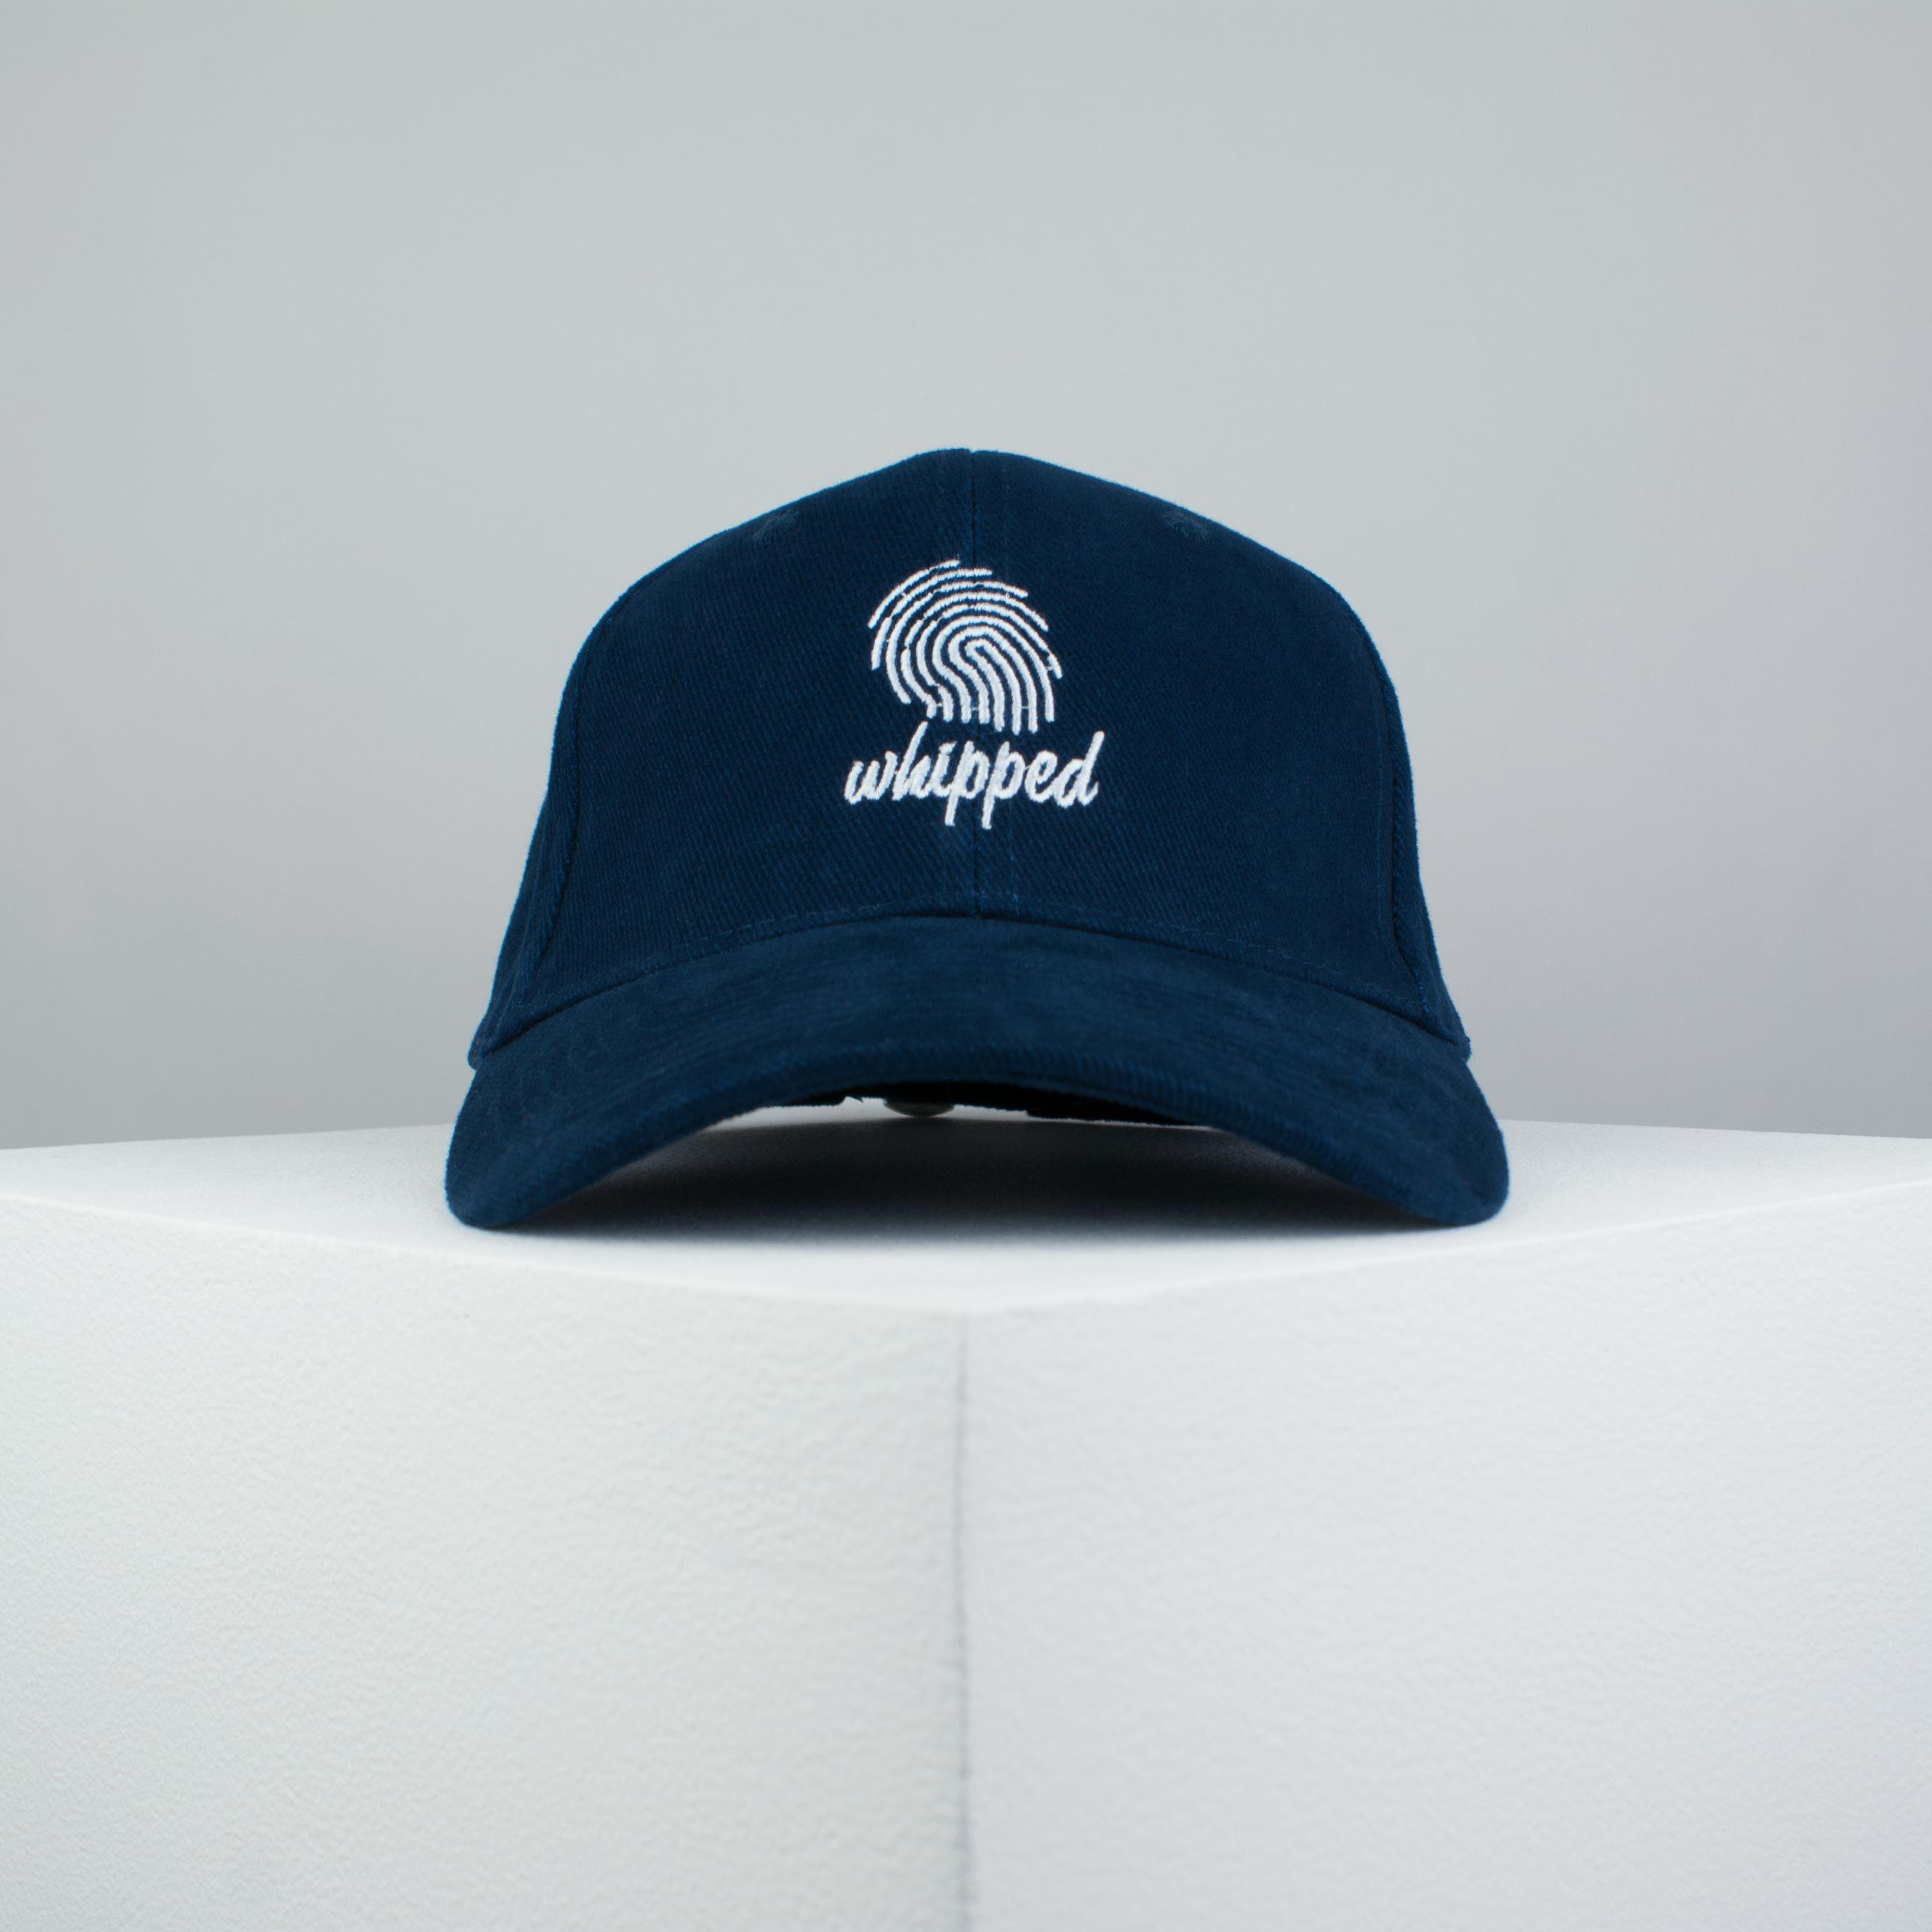 ... Whipped embroidered baseball cap navy   feminist   patches   feminism    embroidery   patch ... d84e50c86532